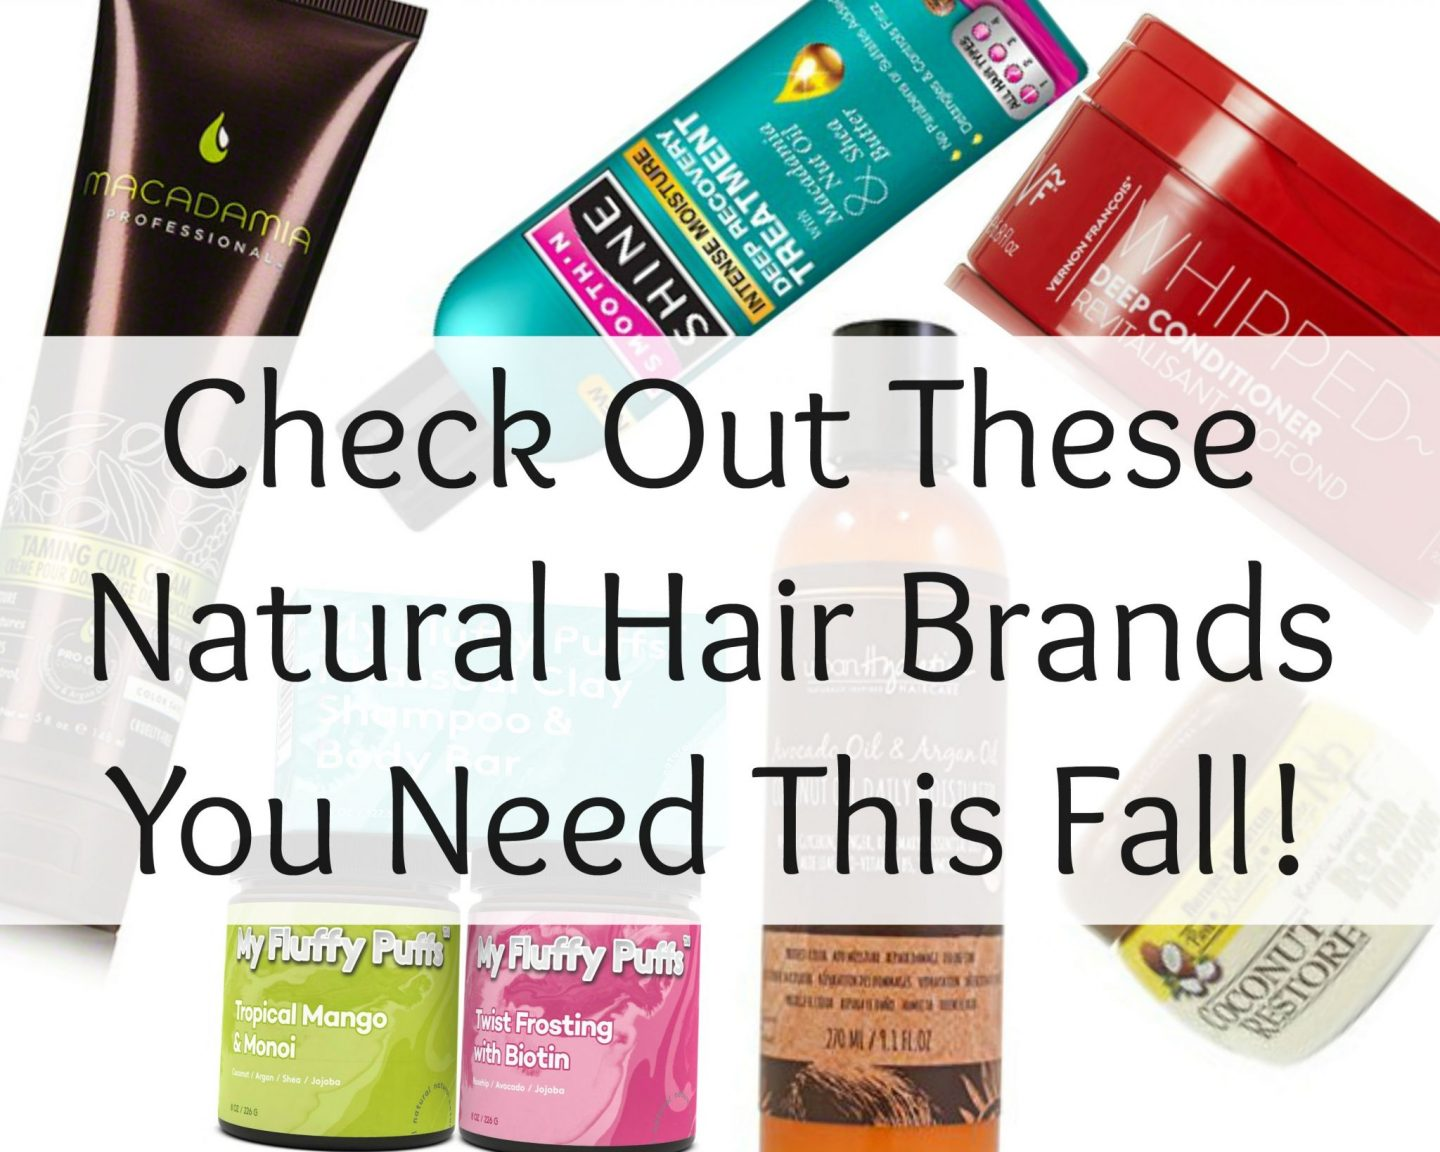 Check Out These Natural Hair Brands You Need This Fall